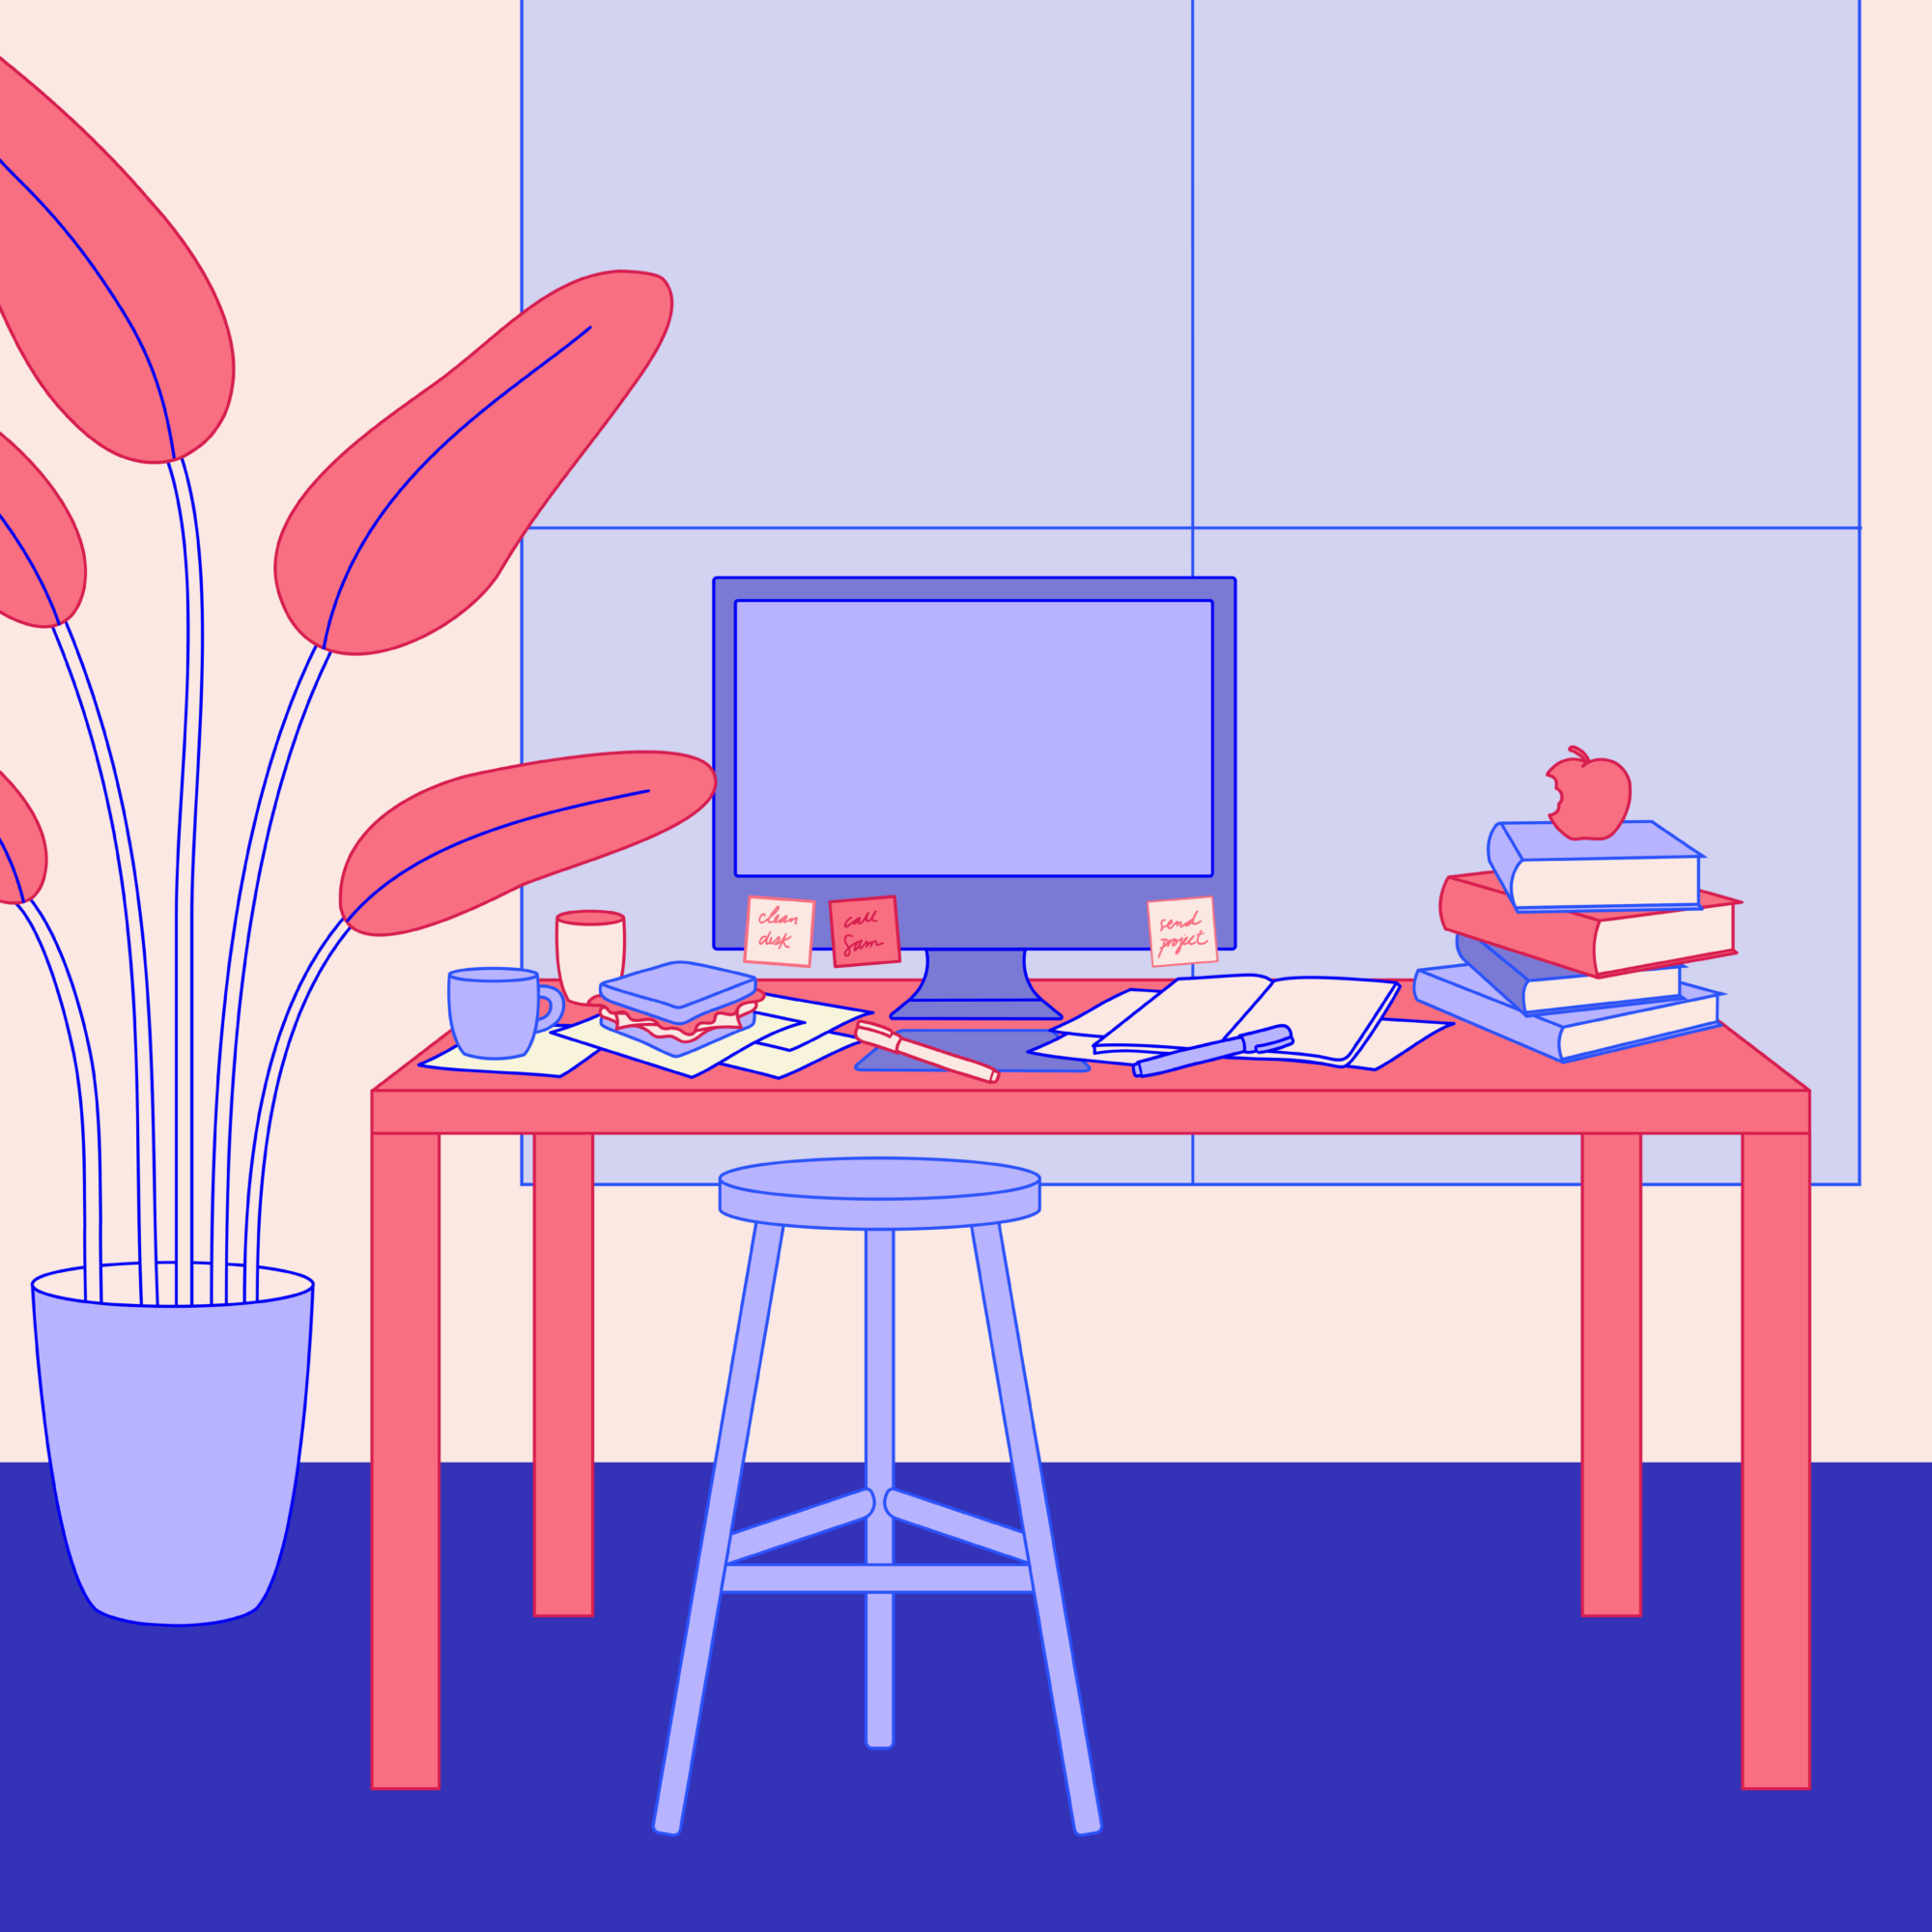 Work desk with a computer, books, coffee and snacks, by Kika Fuenzalida